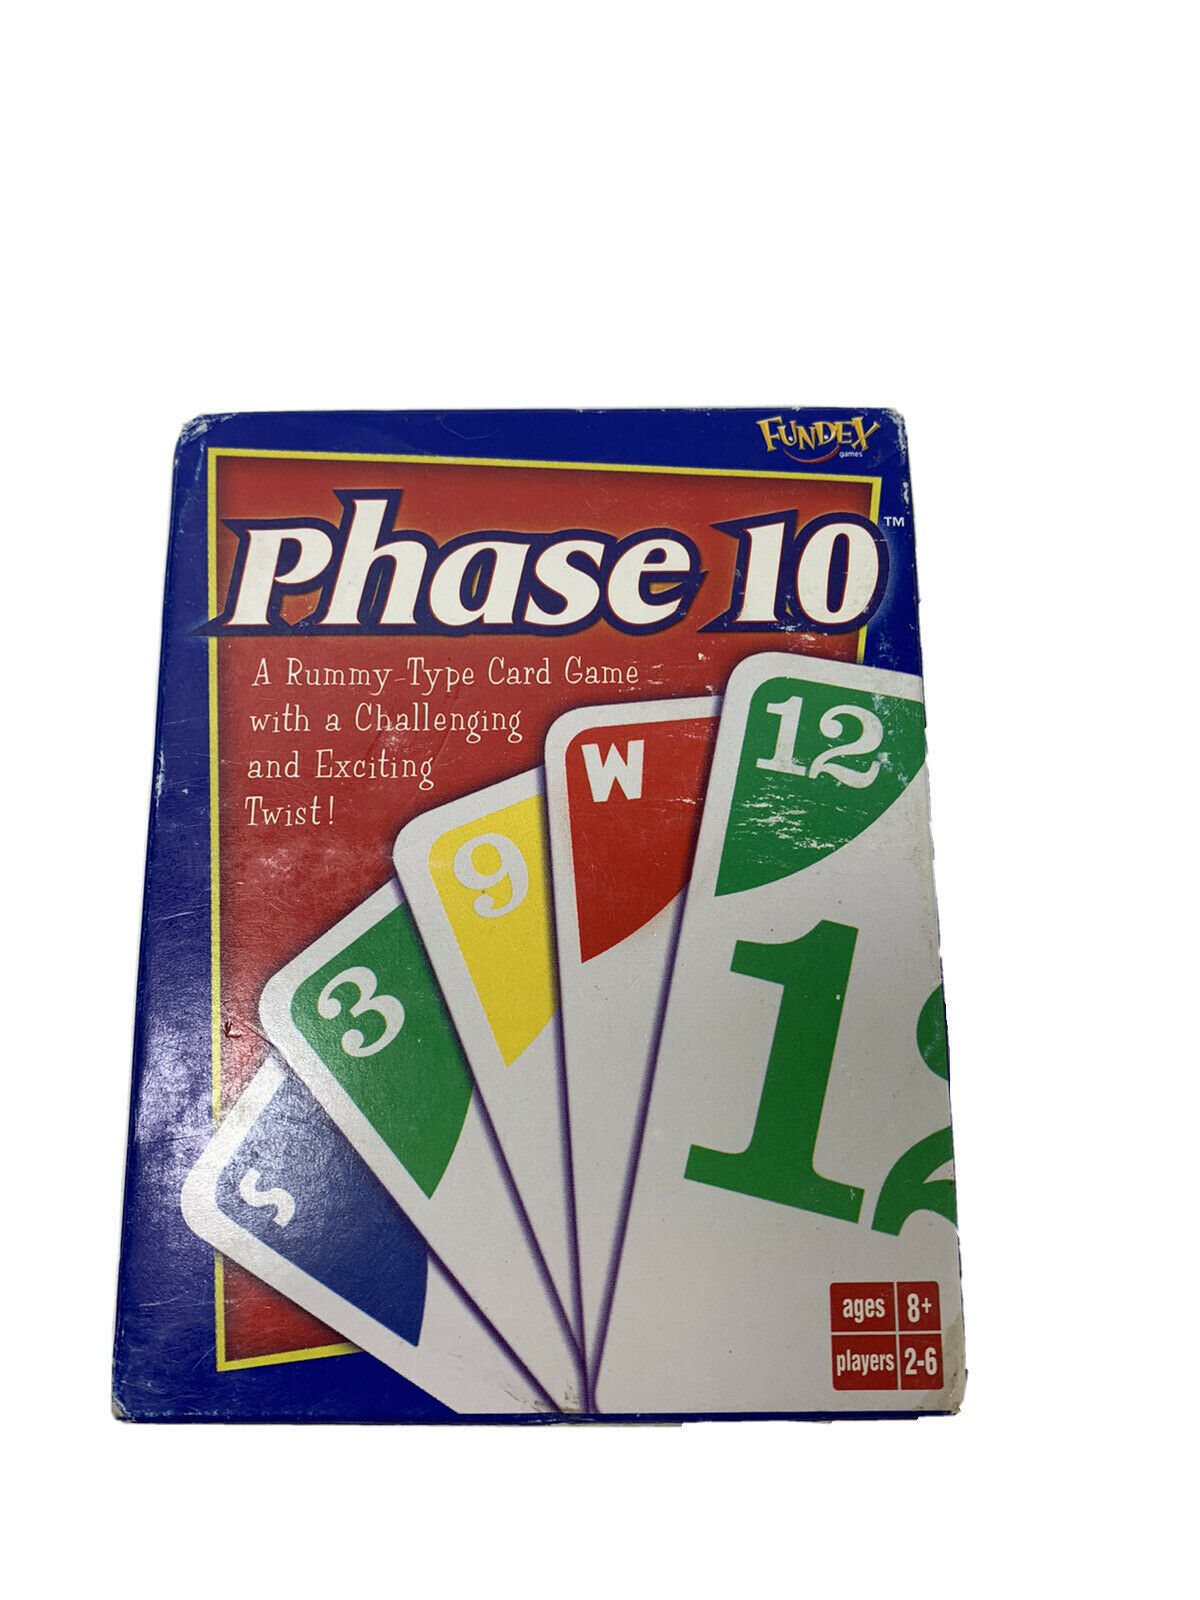 Phase 10 Card Game Family Friends age 8+ Rummy Game New Sealed Deck. Such fun! - $4.22